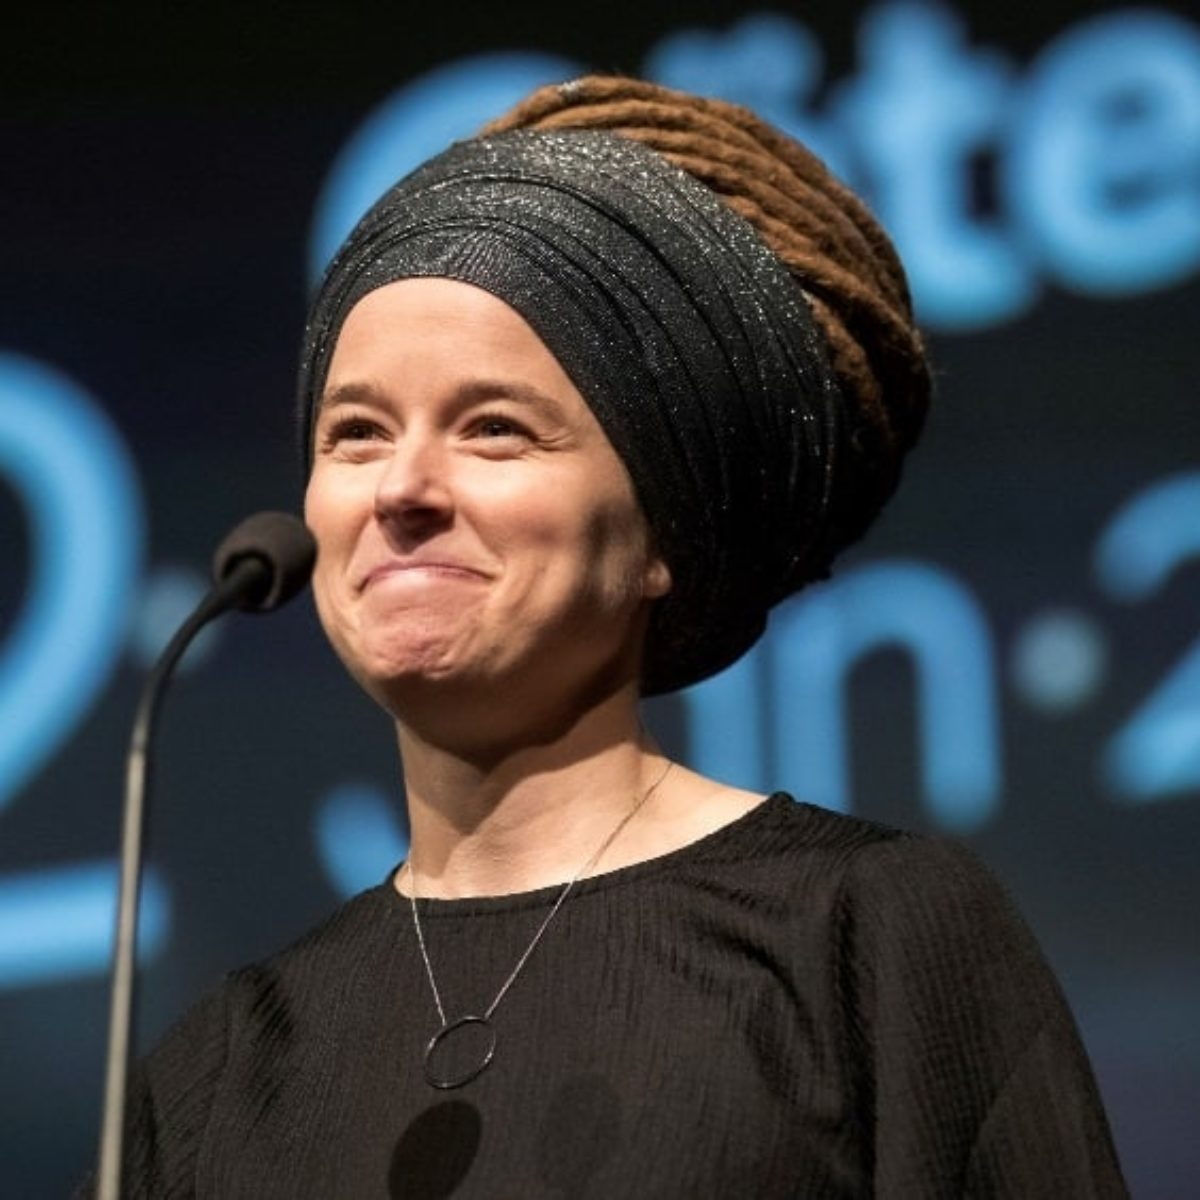 Amanda Lind swedish minister on dreadlocks accused of cultural appropriation